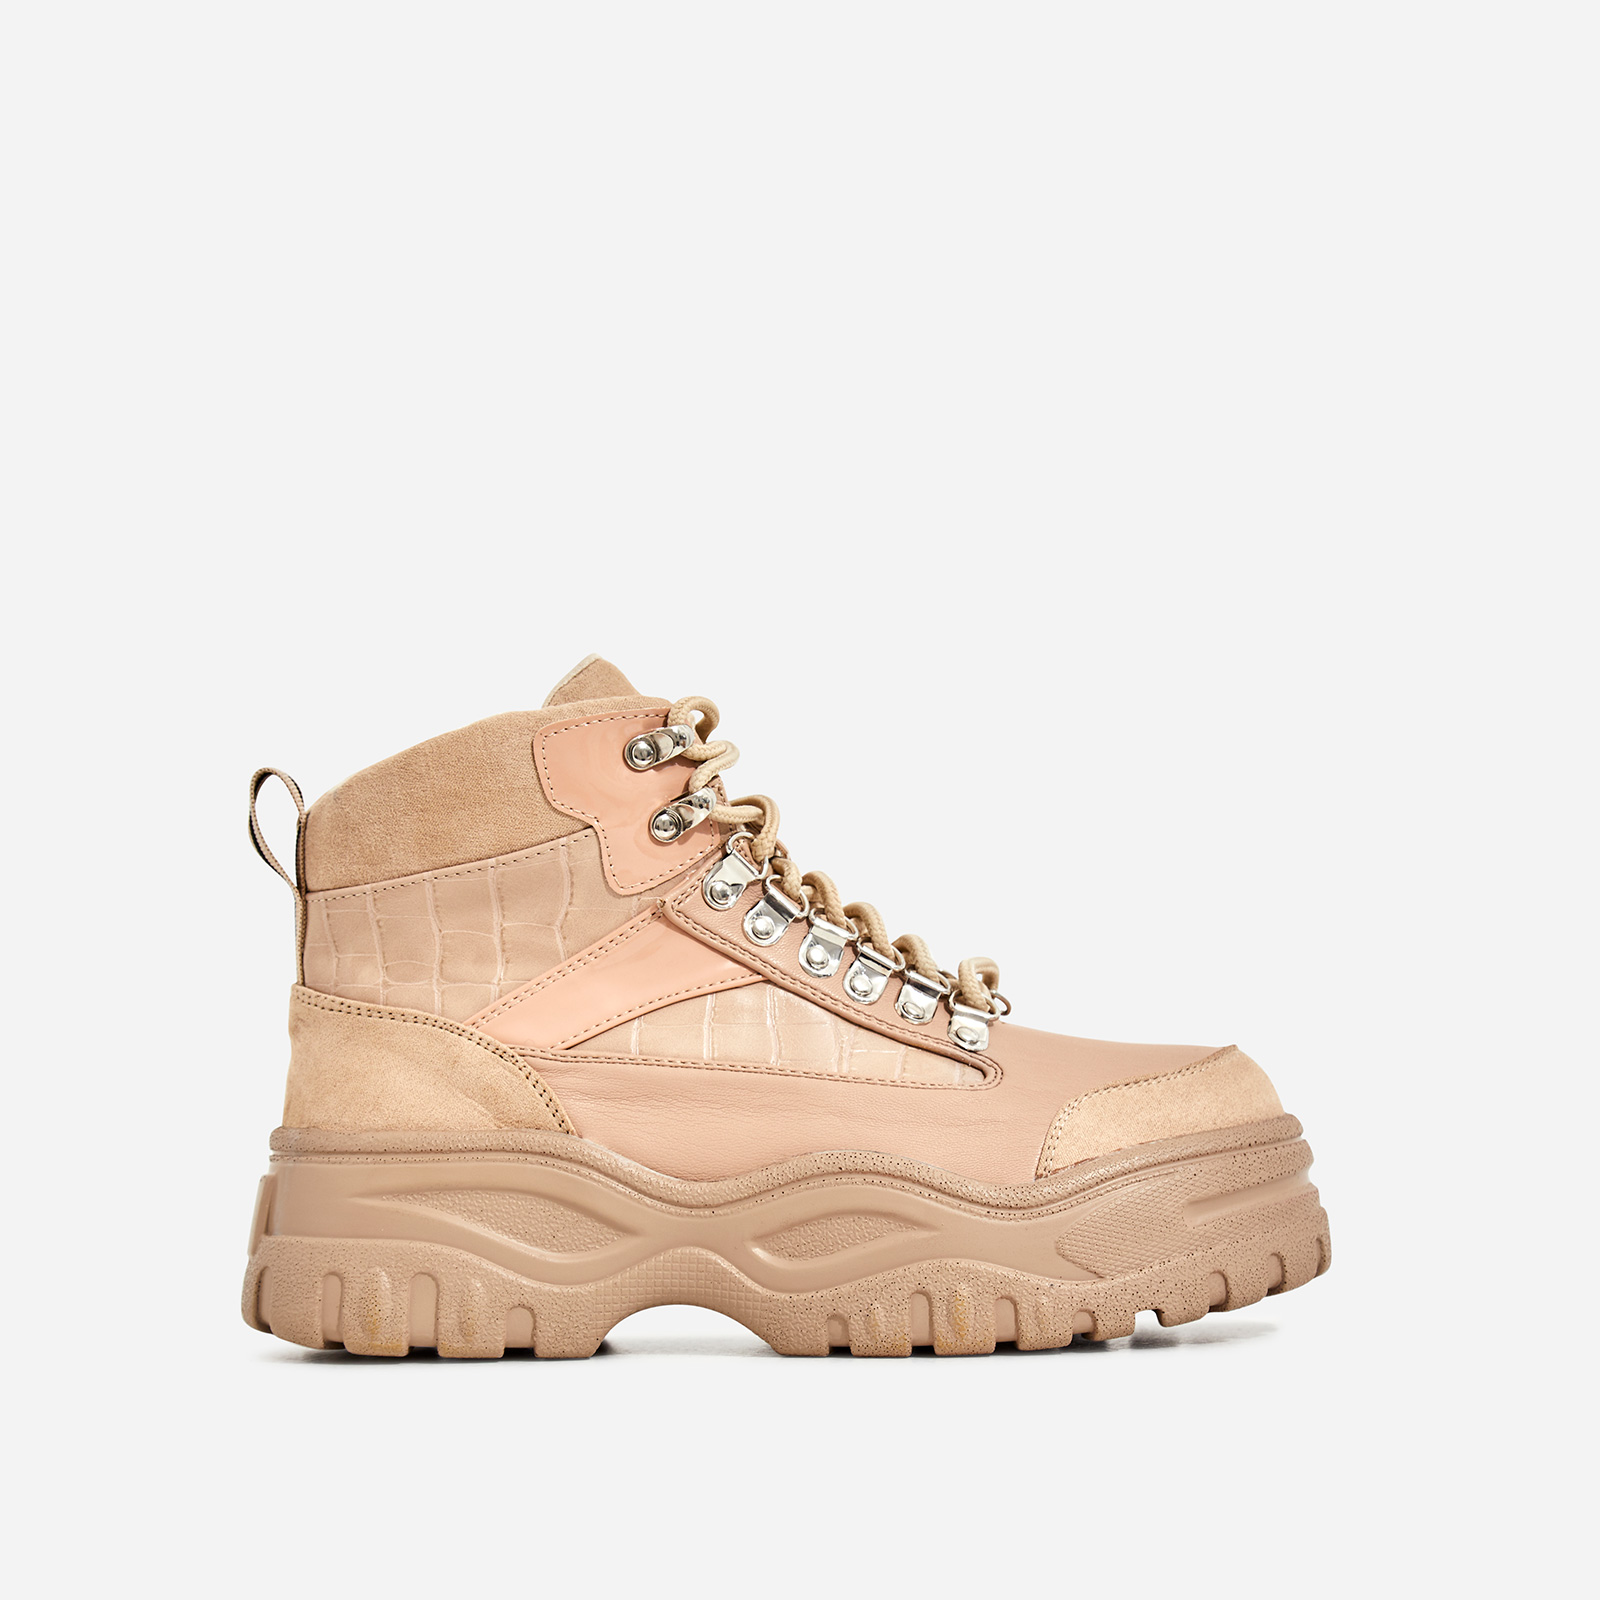 Hammer Lace Up Chunky Sole Ankle Hiker Boot In Nude Croc Print Faux Leather